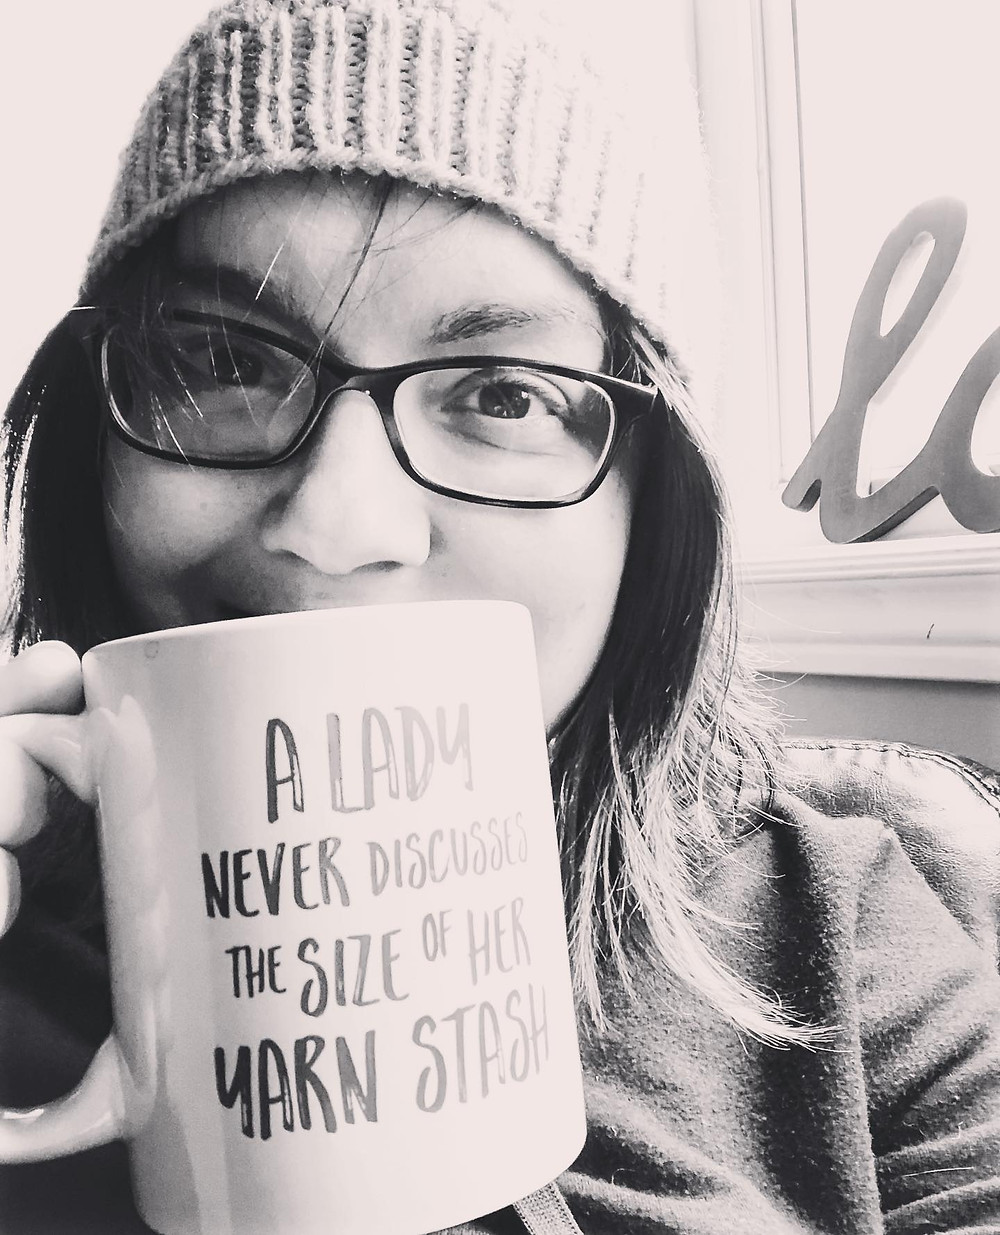 """A black and white photo of Nicole, a woman with brown hair and glasses, wearing a knit beanie and holding a coffee mug by her mouth. The mug has a caption that says """"A lady never discusses the size of her yarn stash."""""""